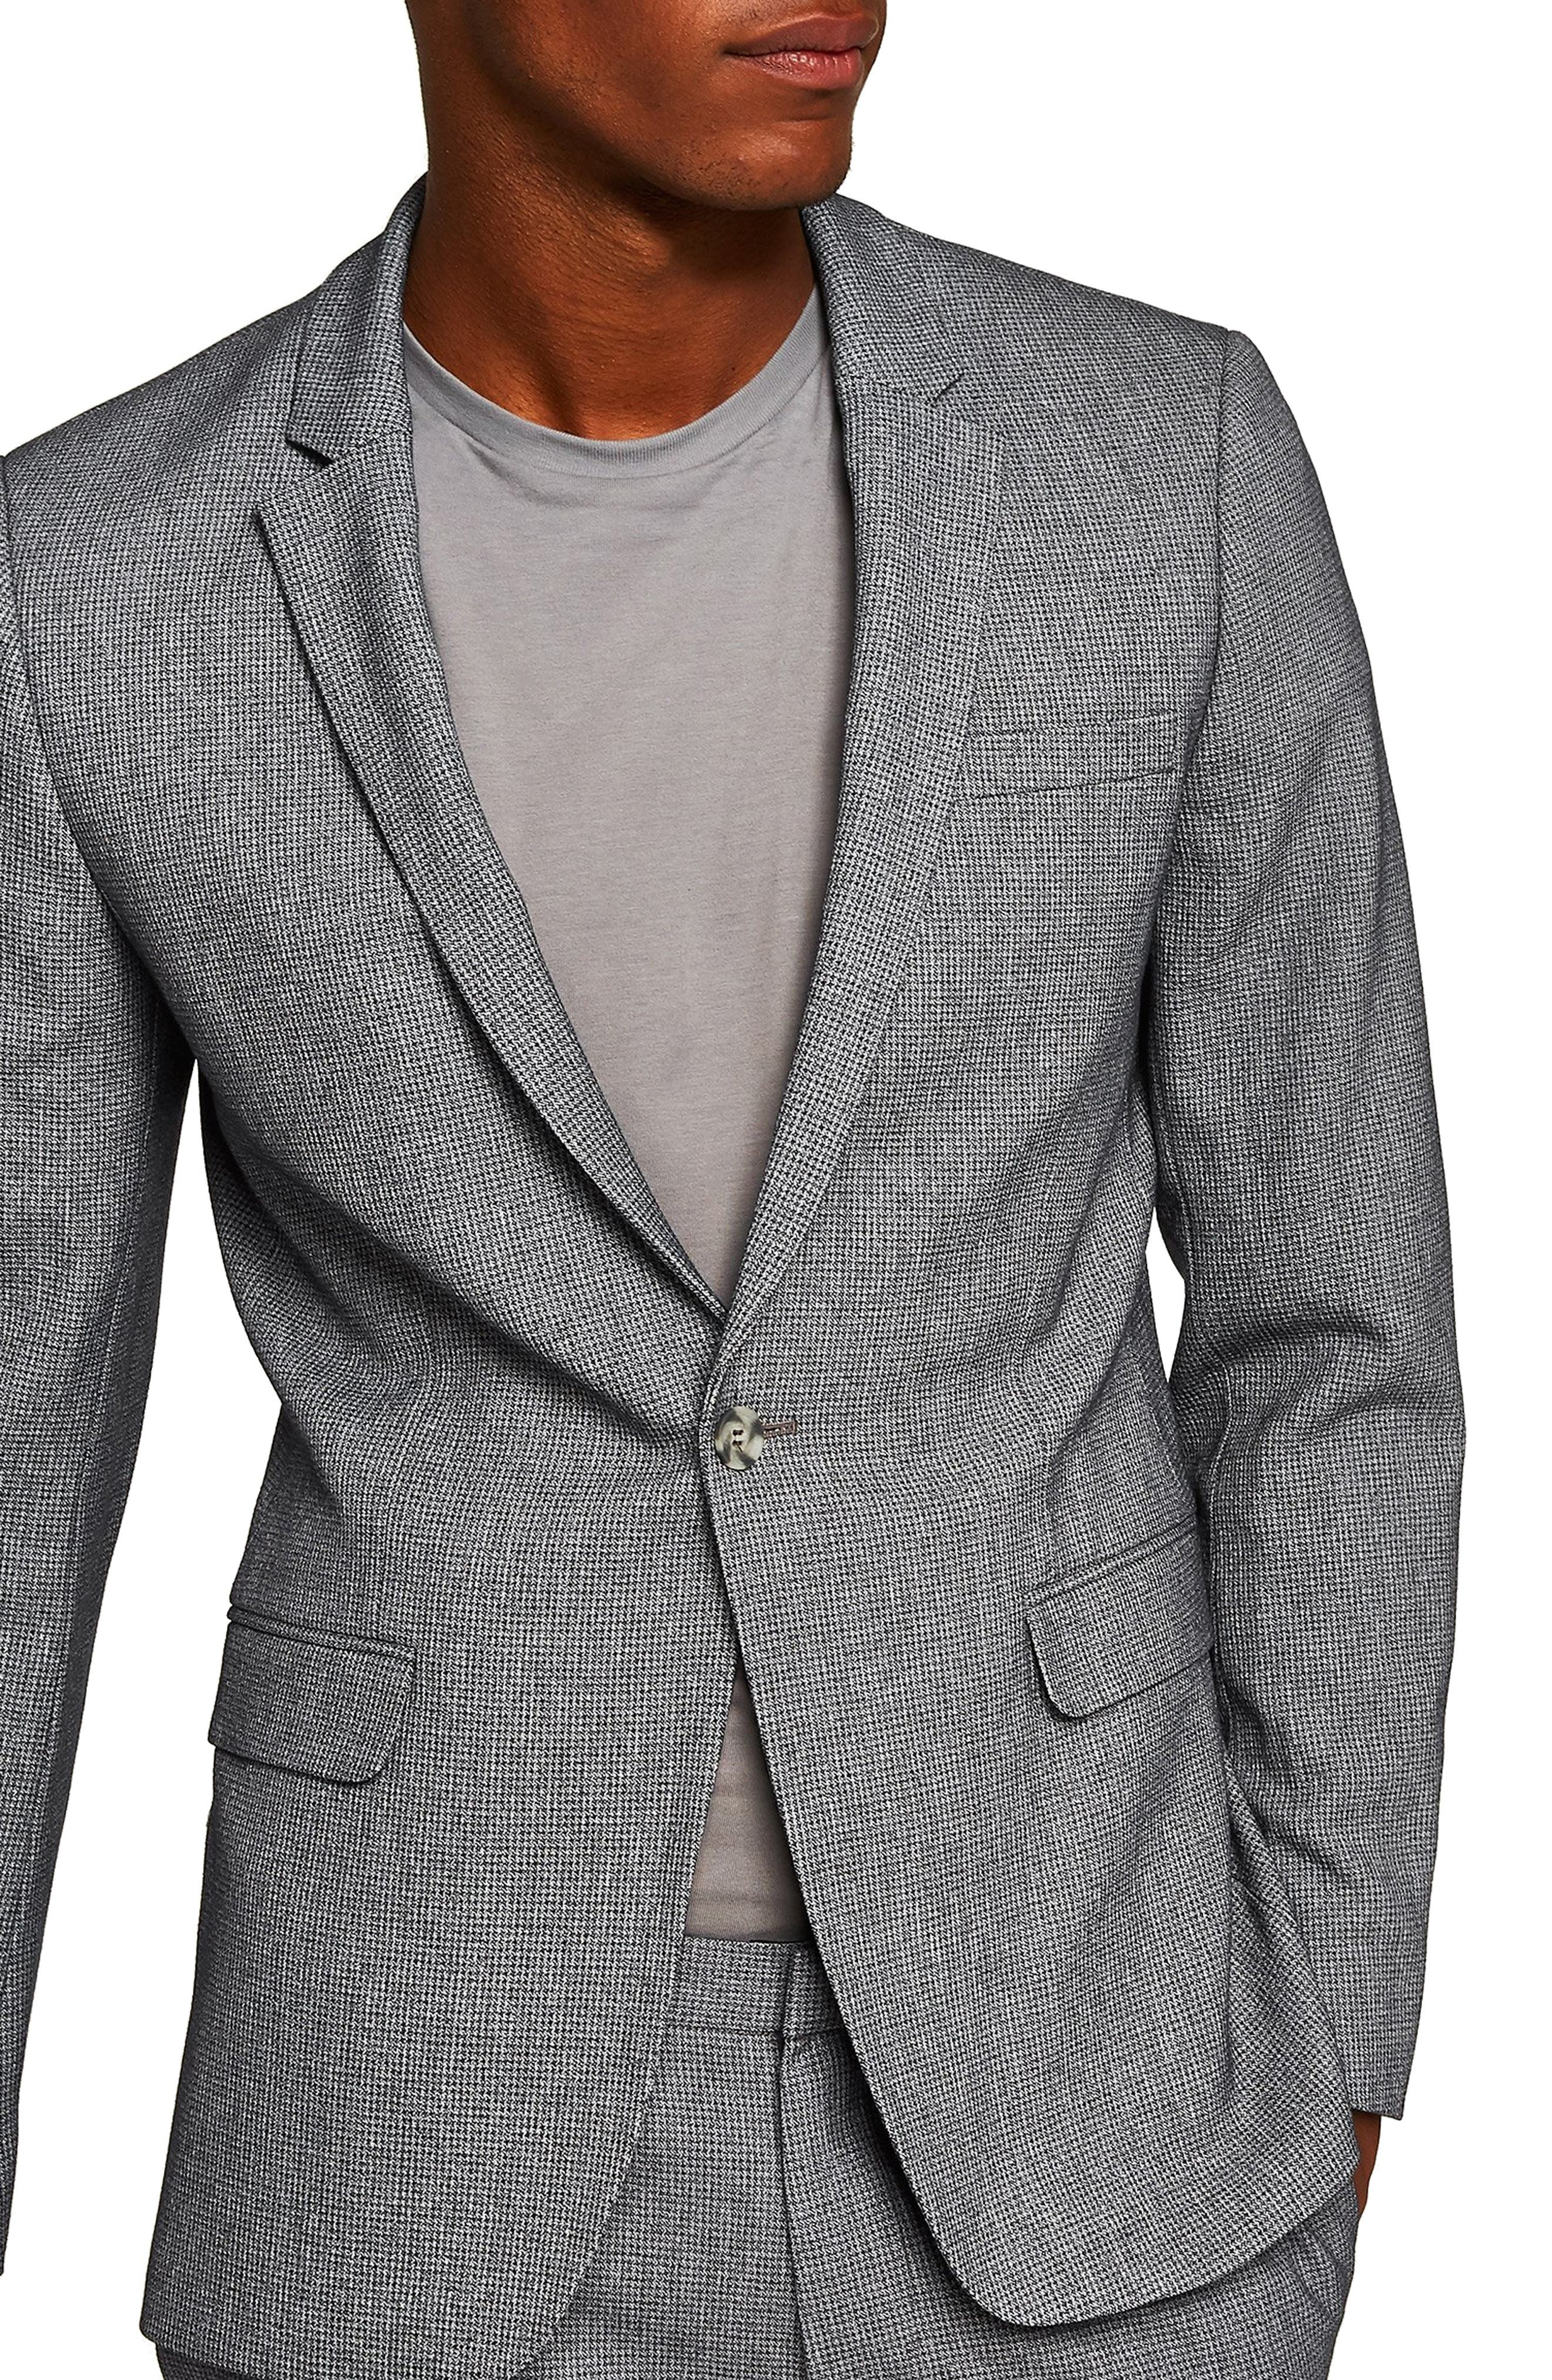 Ultra Skinny Fit Houndstooth Suit Jacket,                             Main thumbnail 1, color,                             GREY